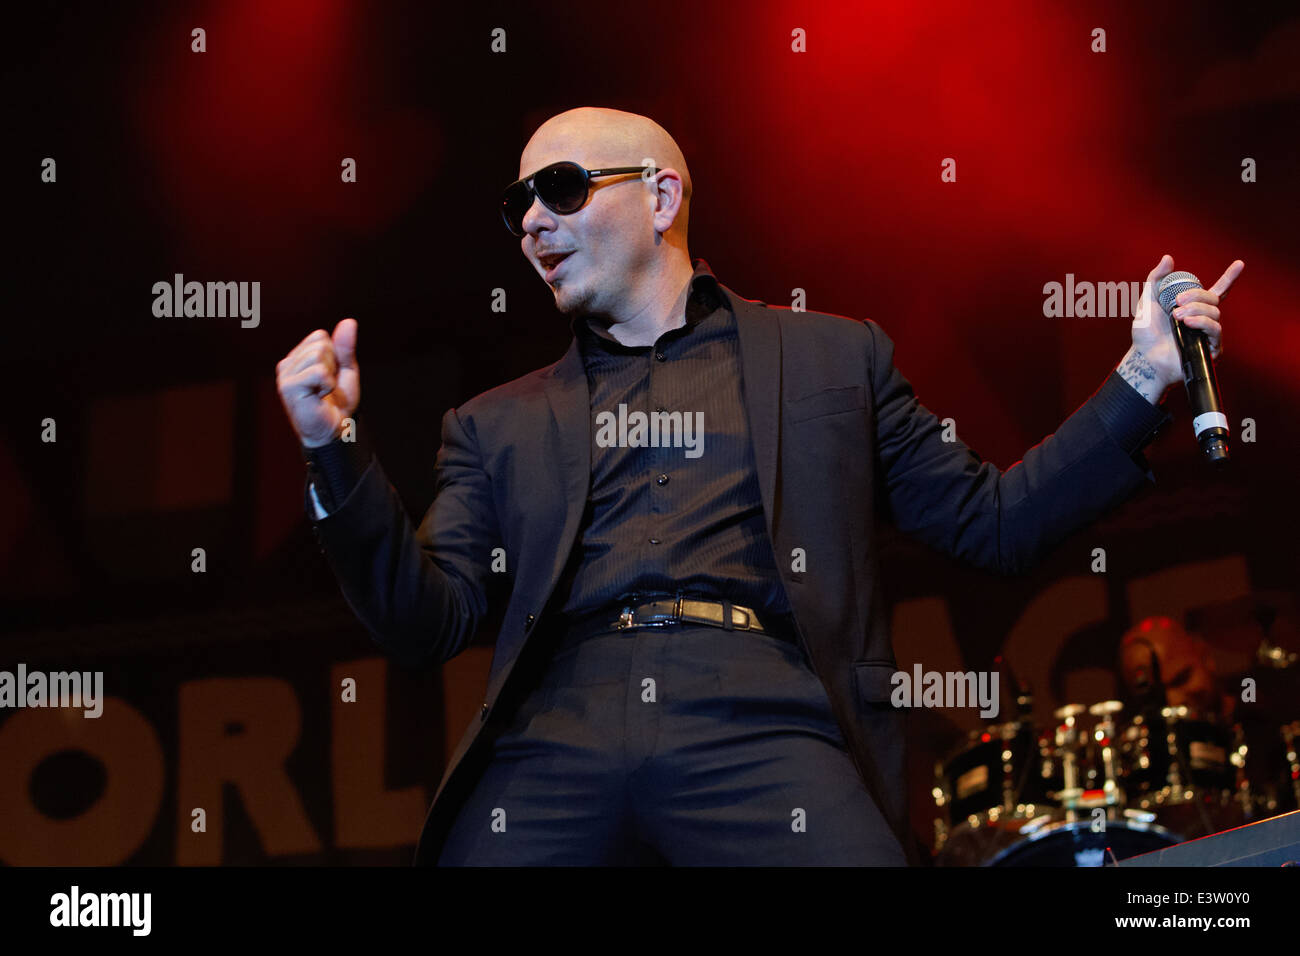 Rapper Armando Christian Pérez, known by the stage name Pitbull in concert, Pitbull live on stage - Stock Image